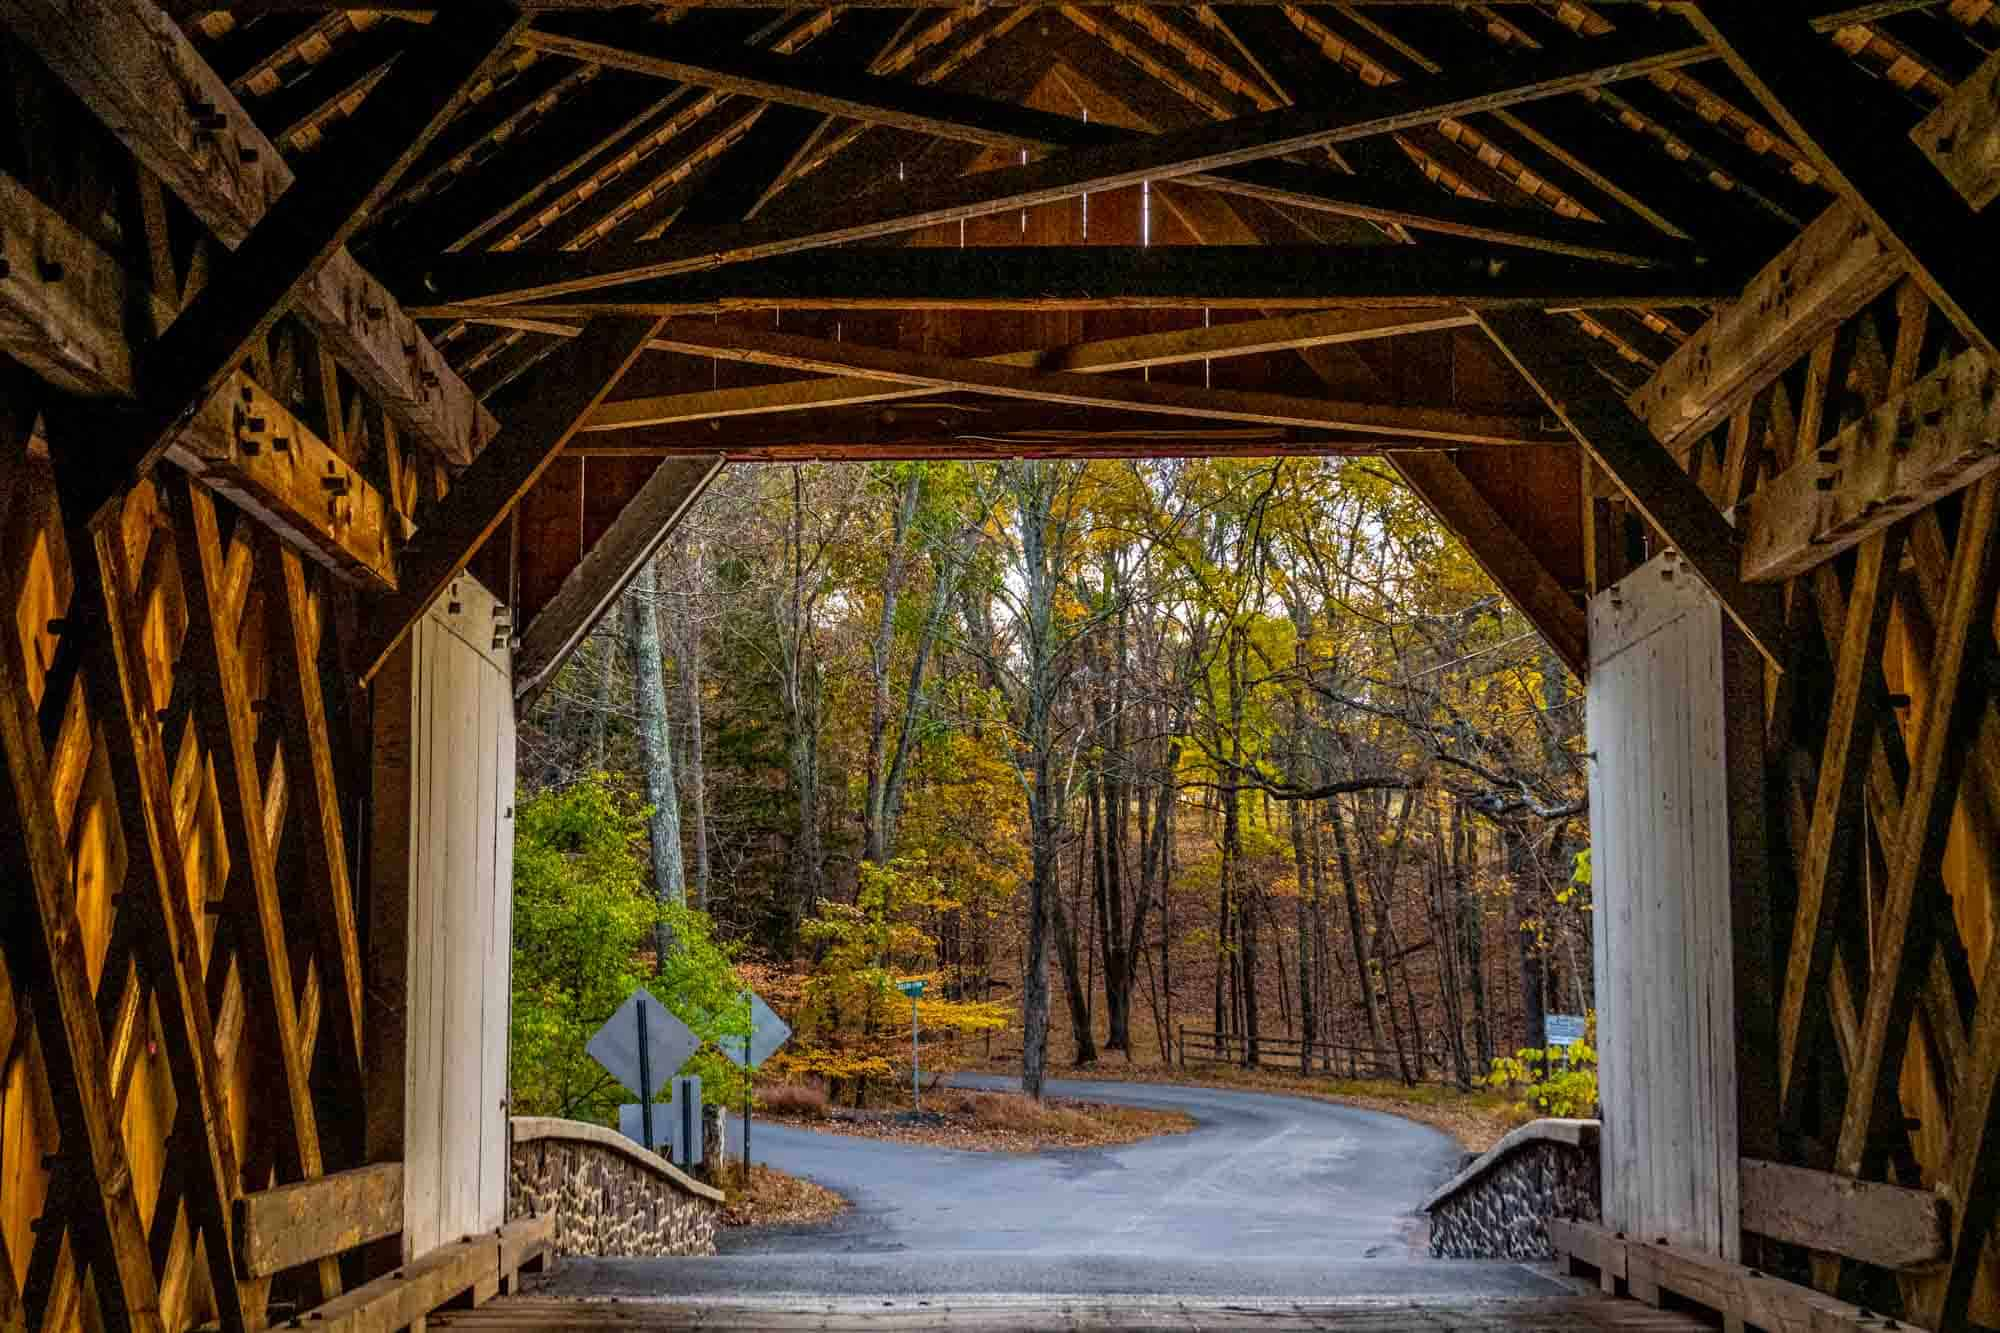 View of a road and trees from inside a wooden covered bridge